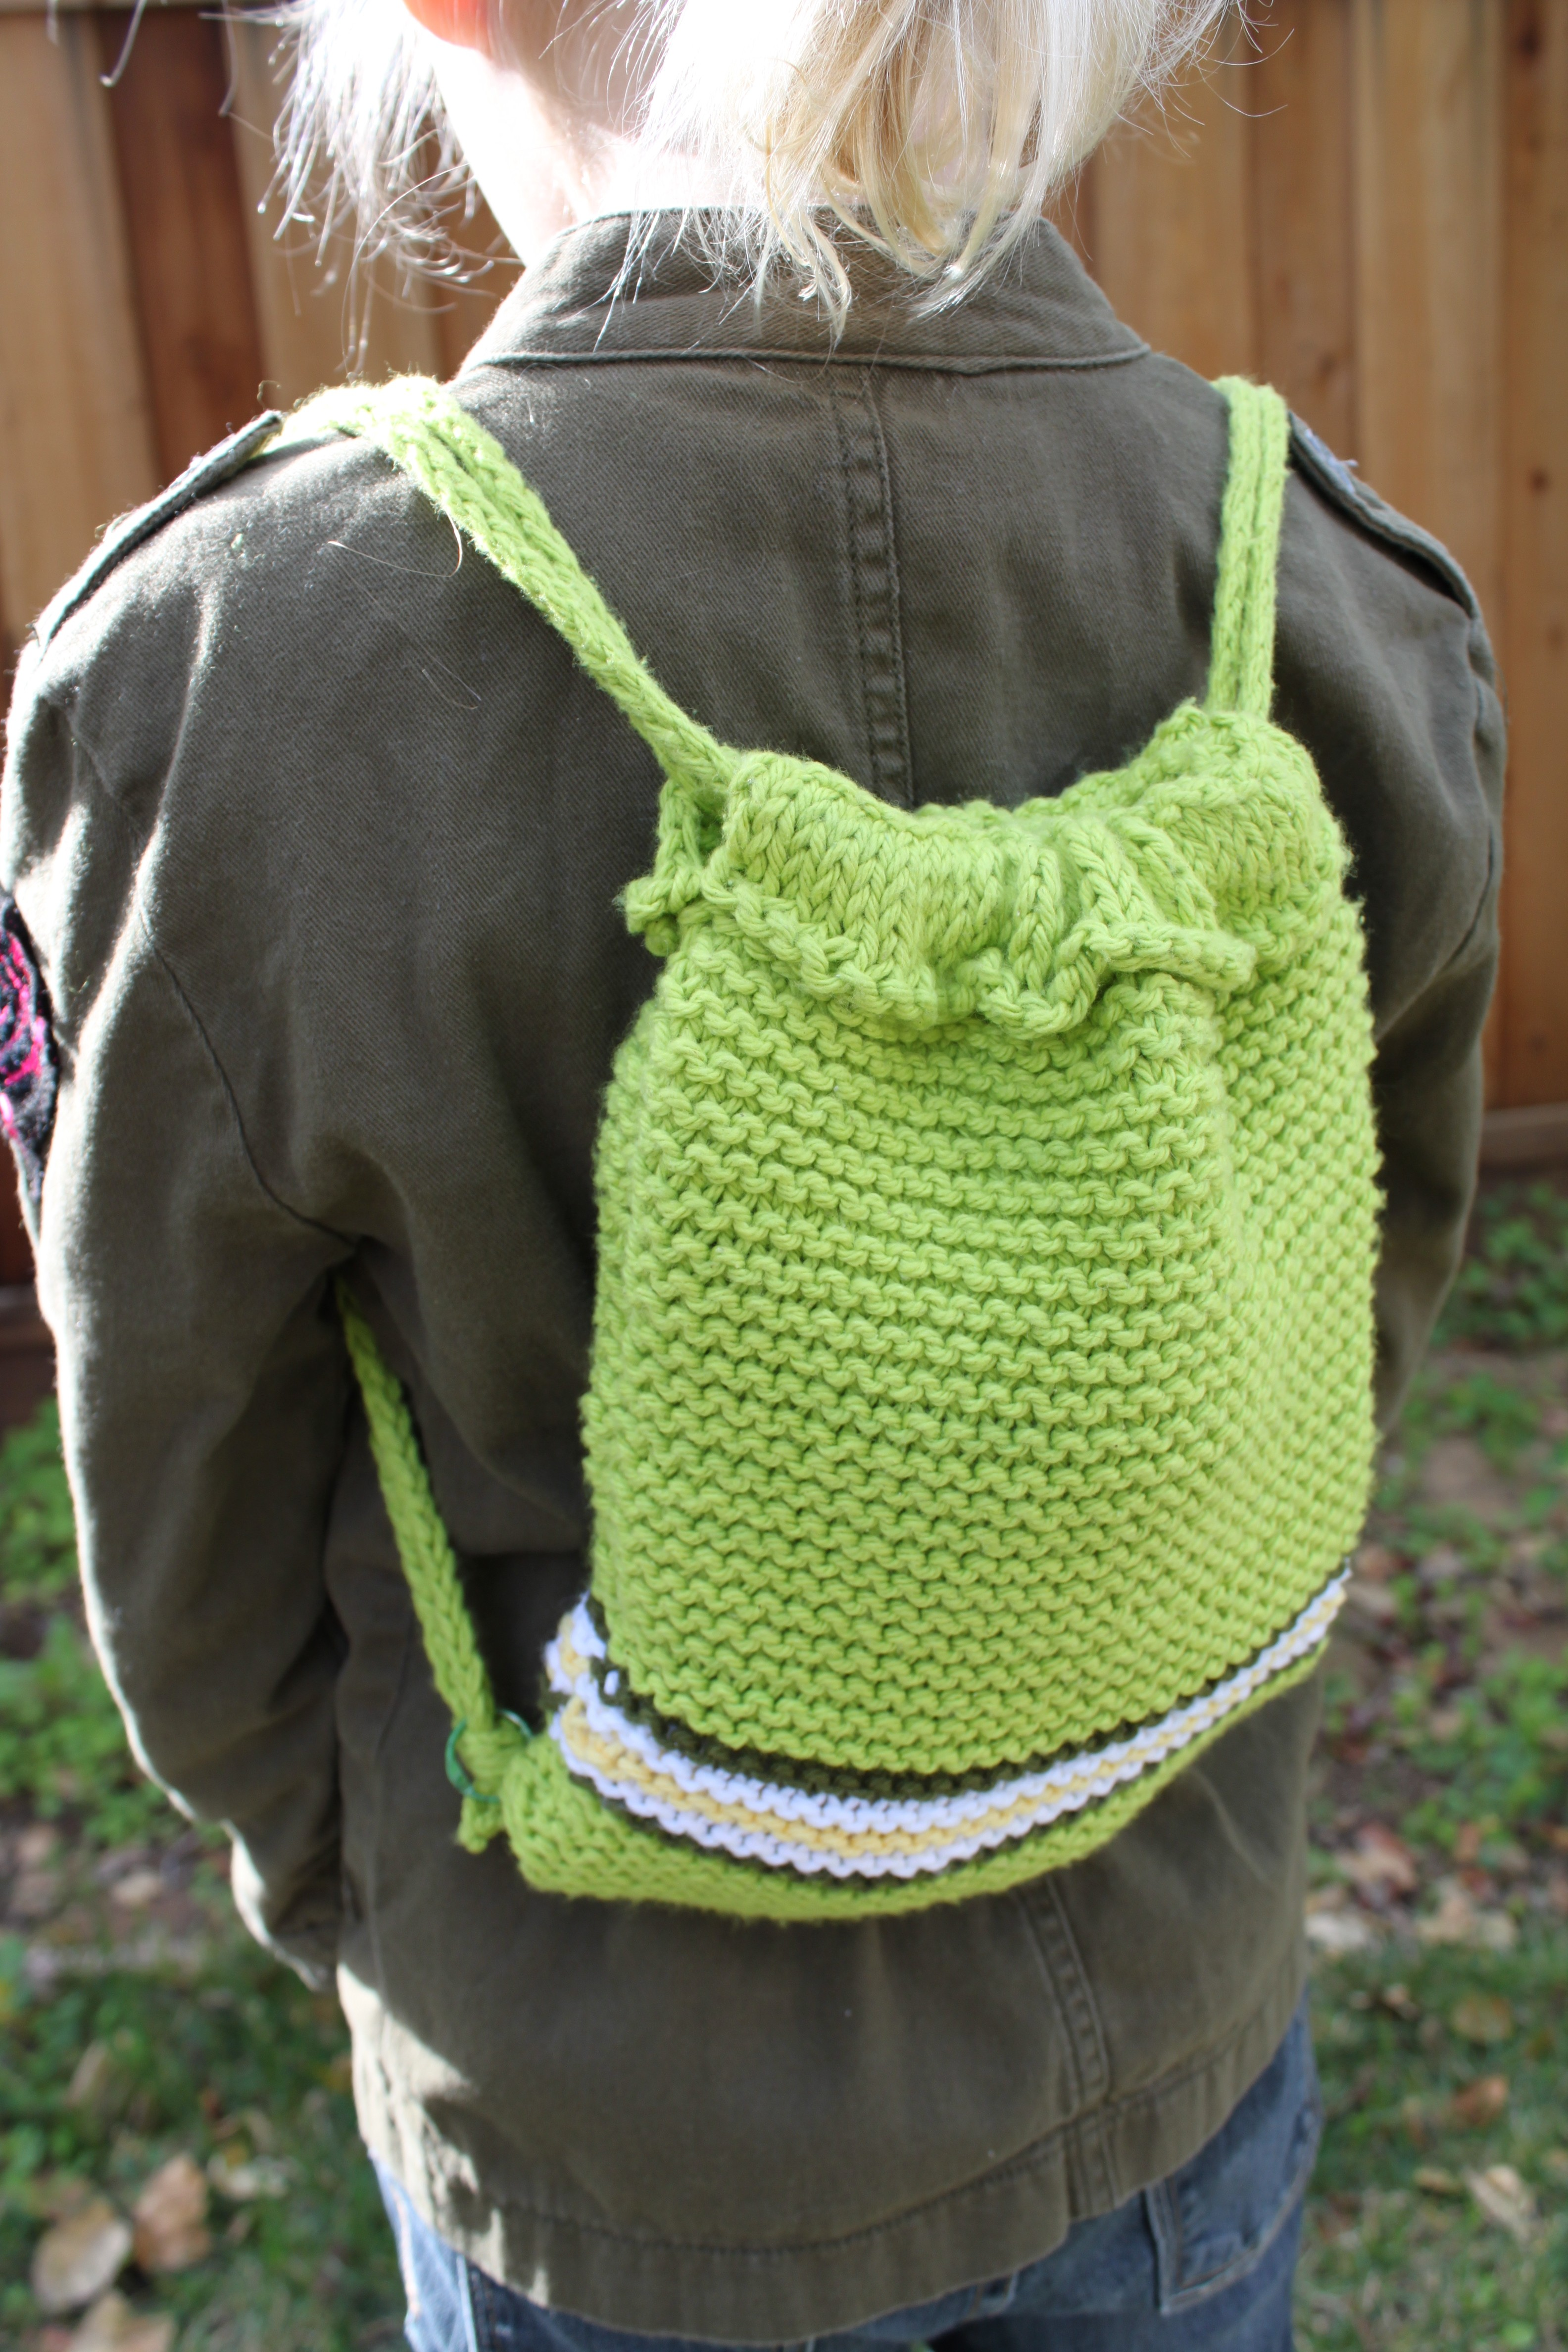 Backpack Knitting Pattern Choice Image - handicraft ideas home ...